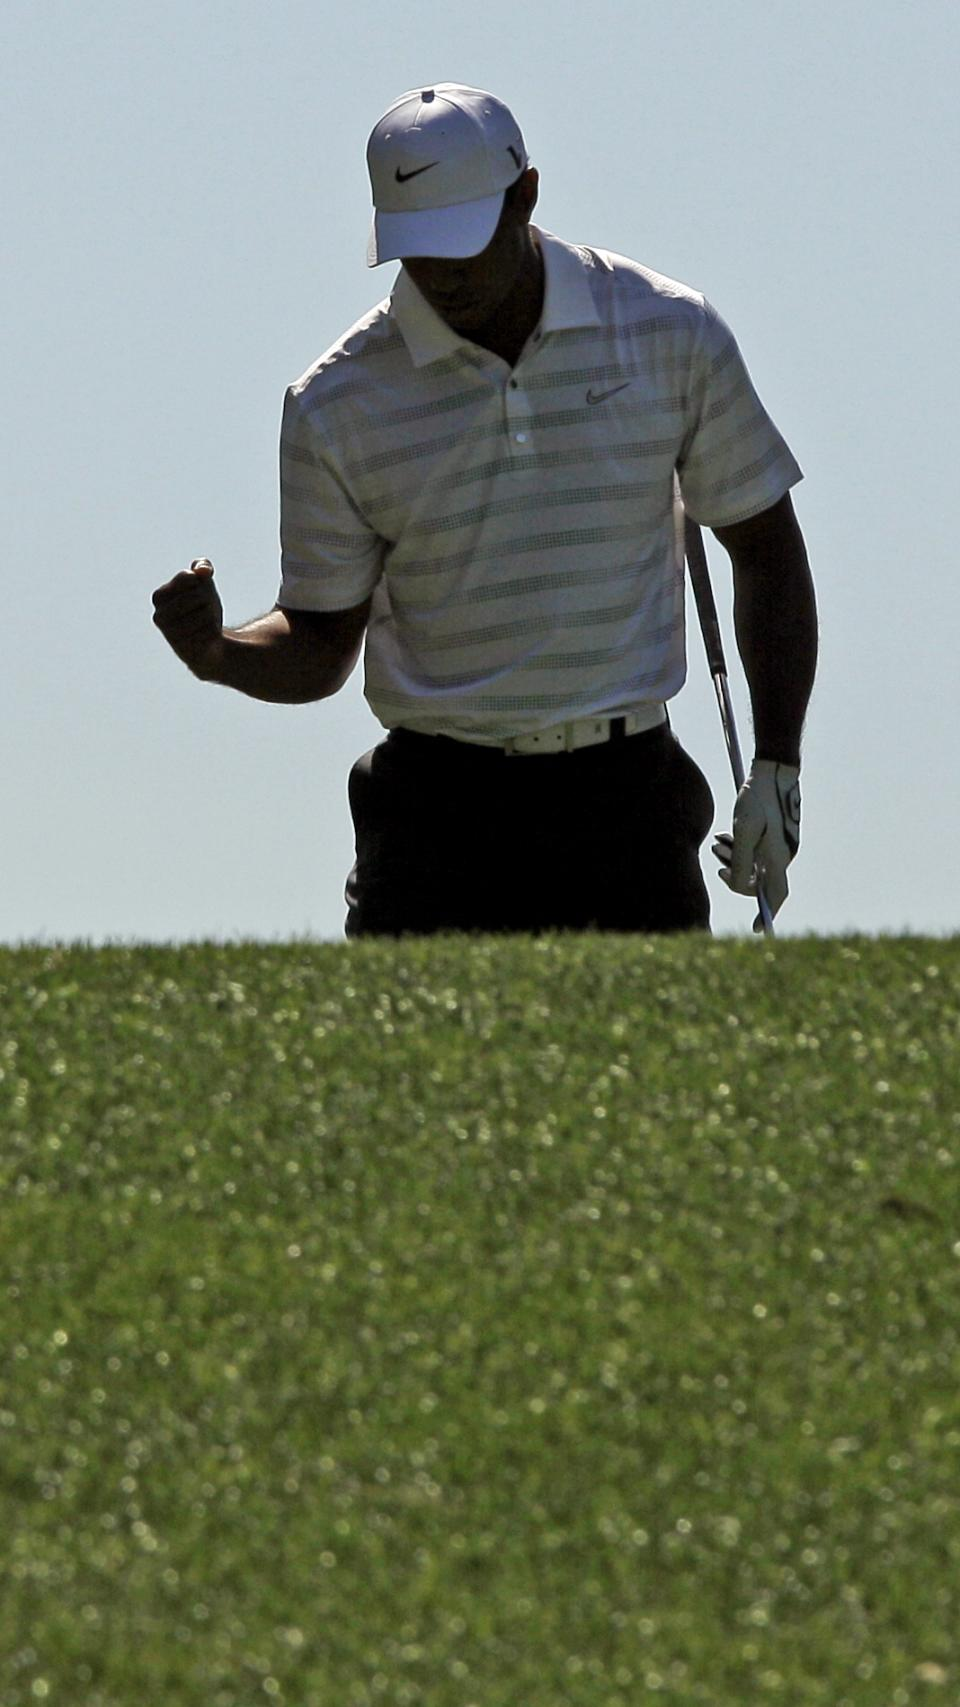 Tiger Woods pumps his fist after teeing off on the fourth hole during the third round of the Masters golf tournament Saturday, April 7, 2012, in Augusta, Ga. (AP Photo/Charlie Riedel)